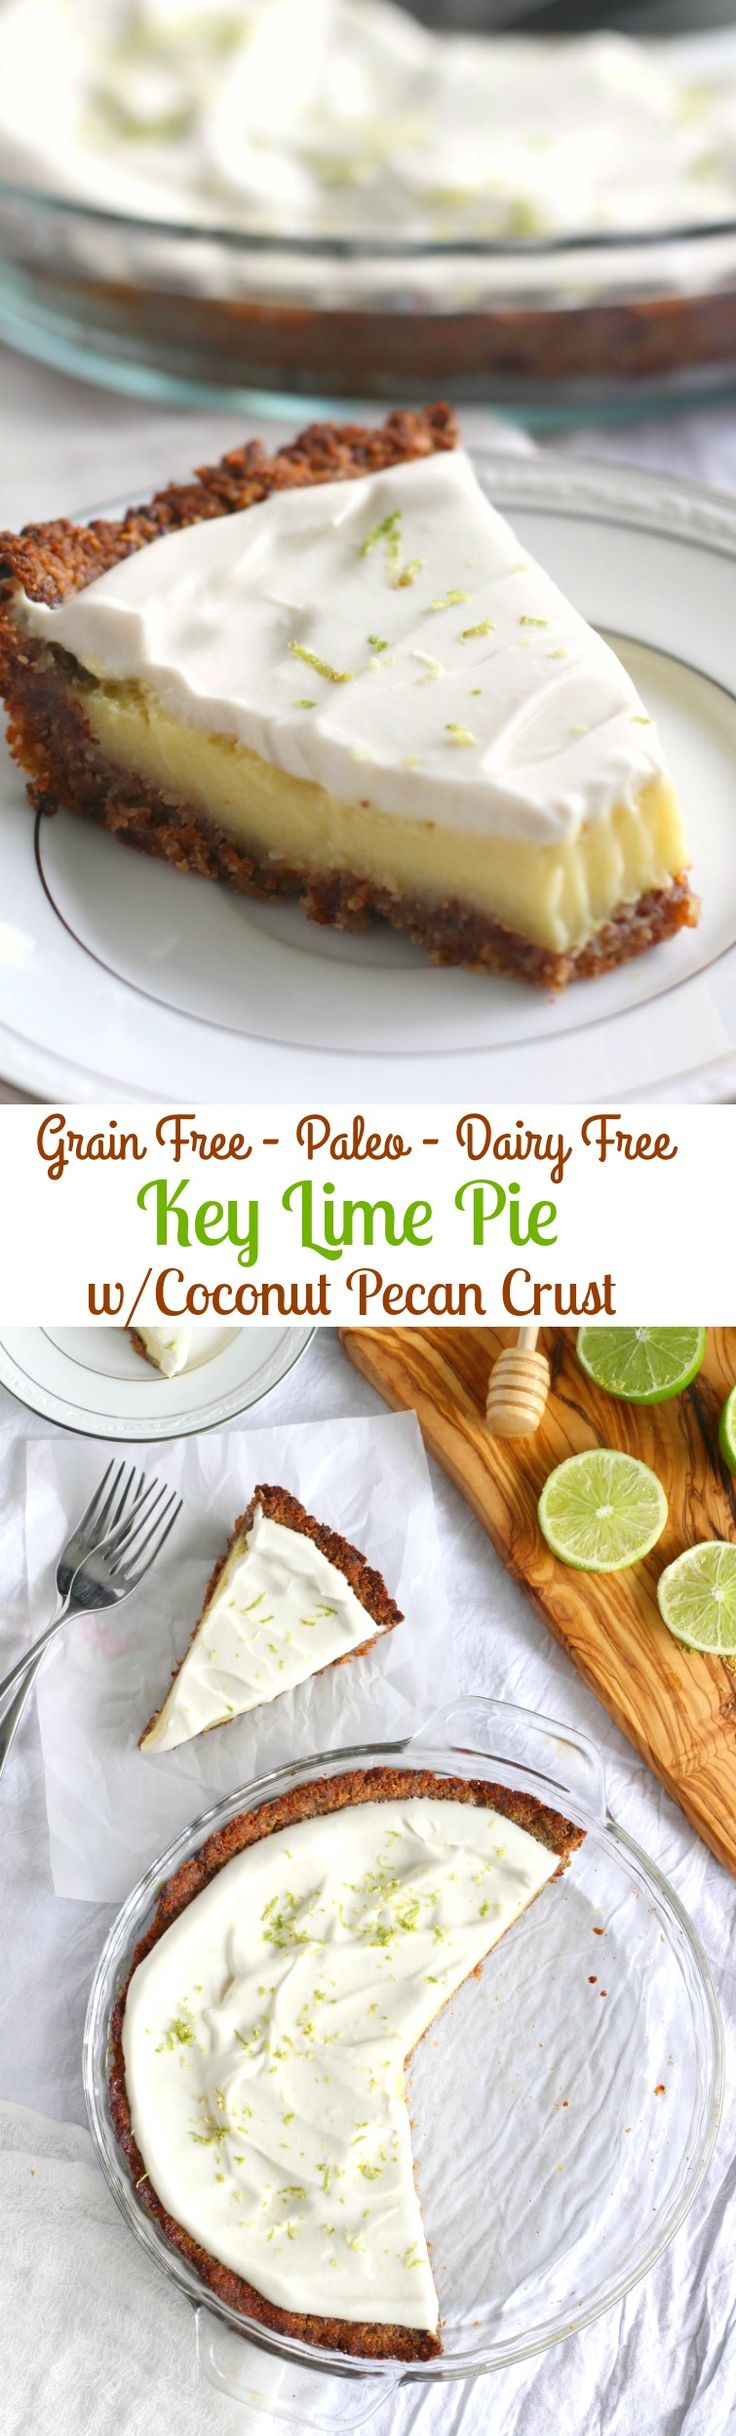 Paleo Key Lime Pie with Coconut Pecan Crust #justeatrealfood #paleorunningmomma